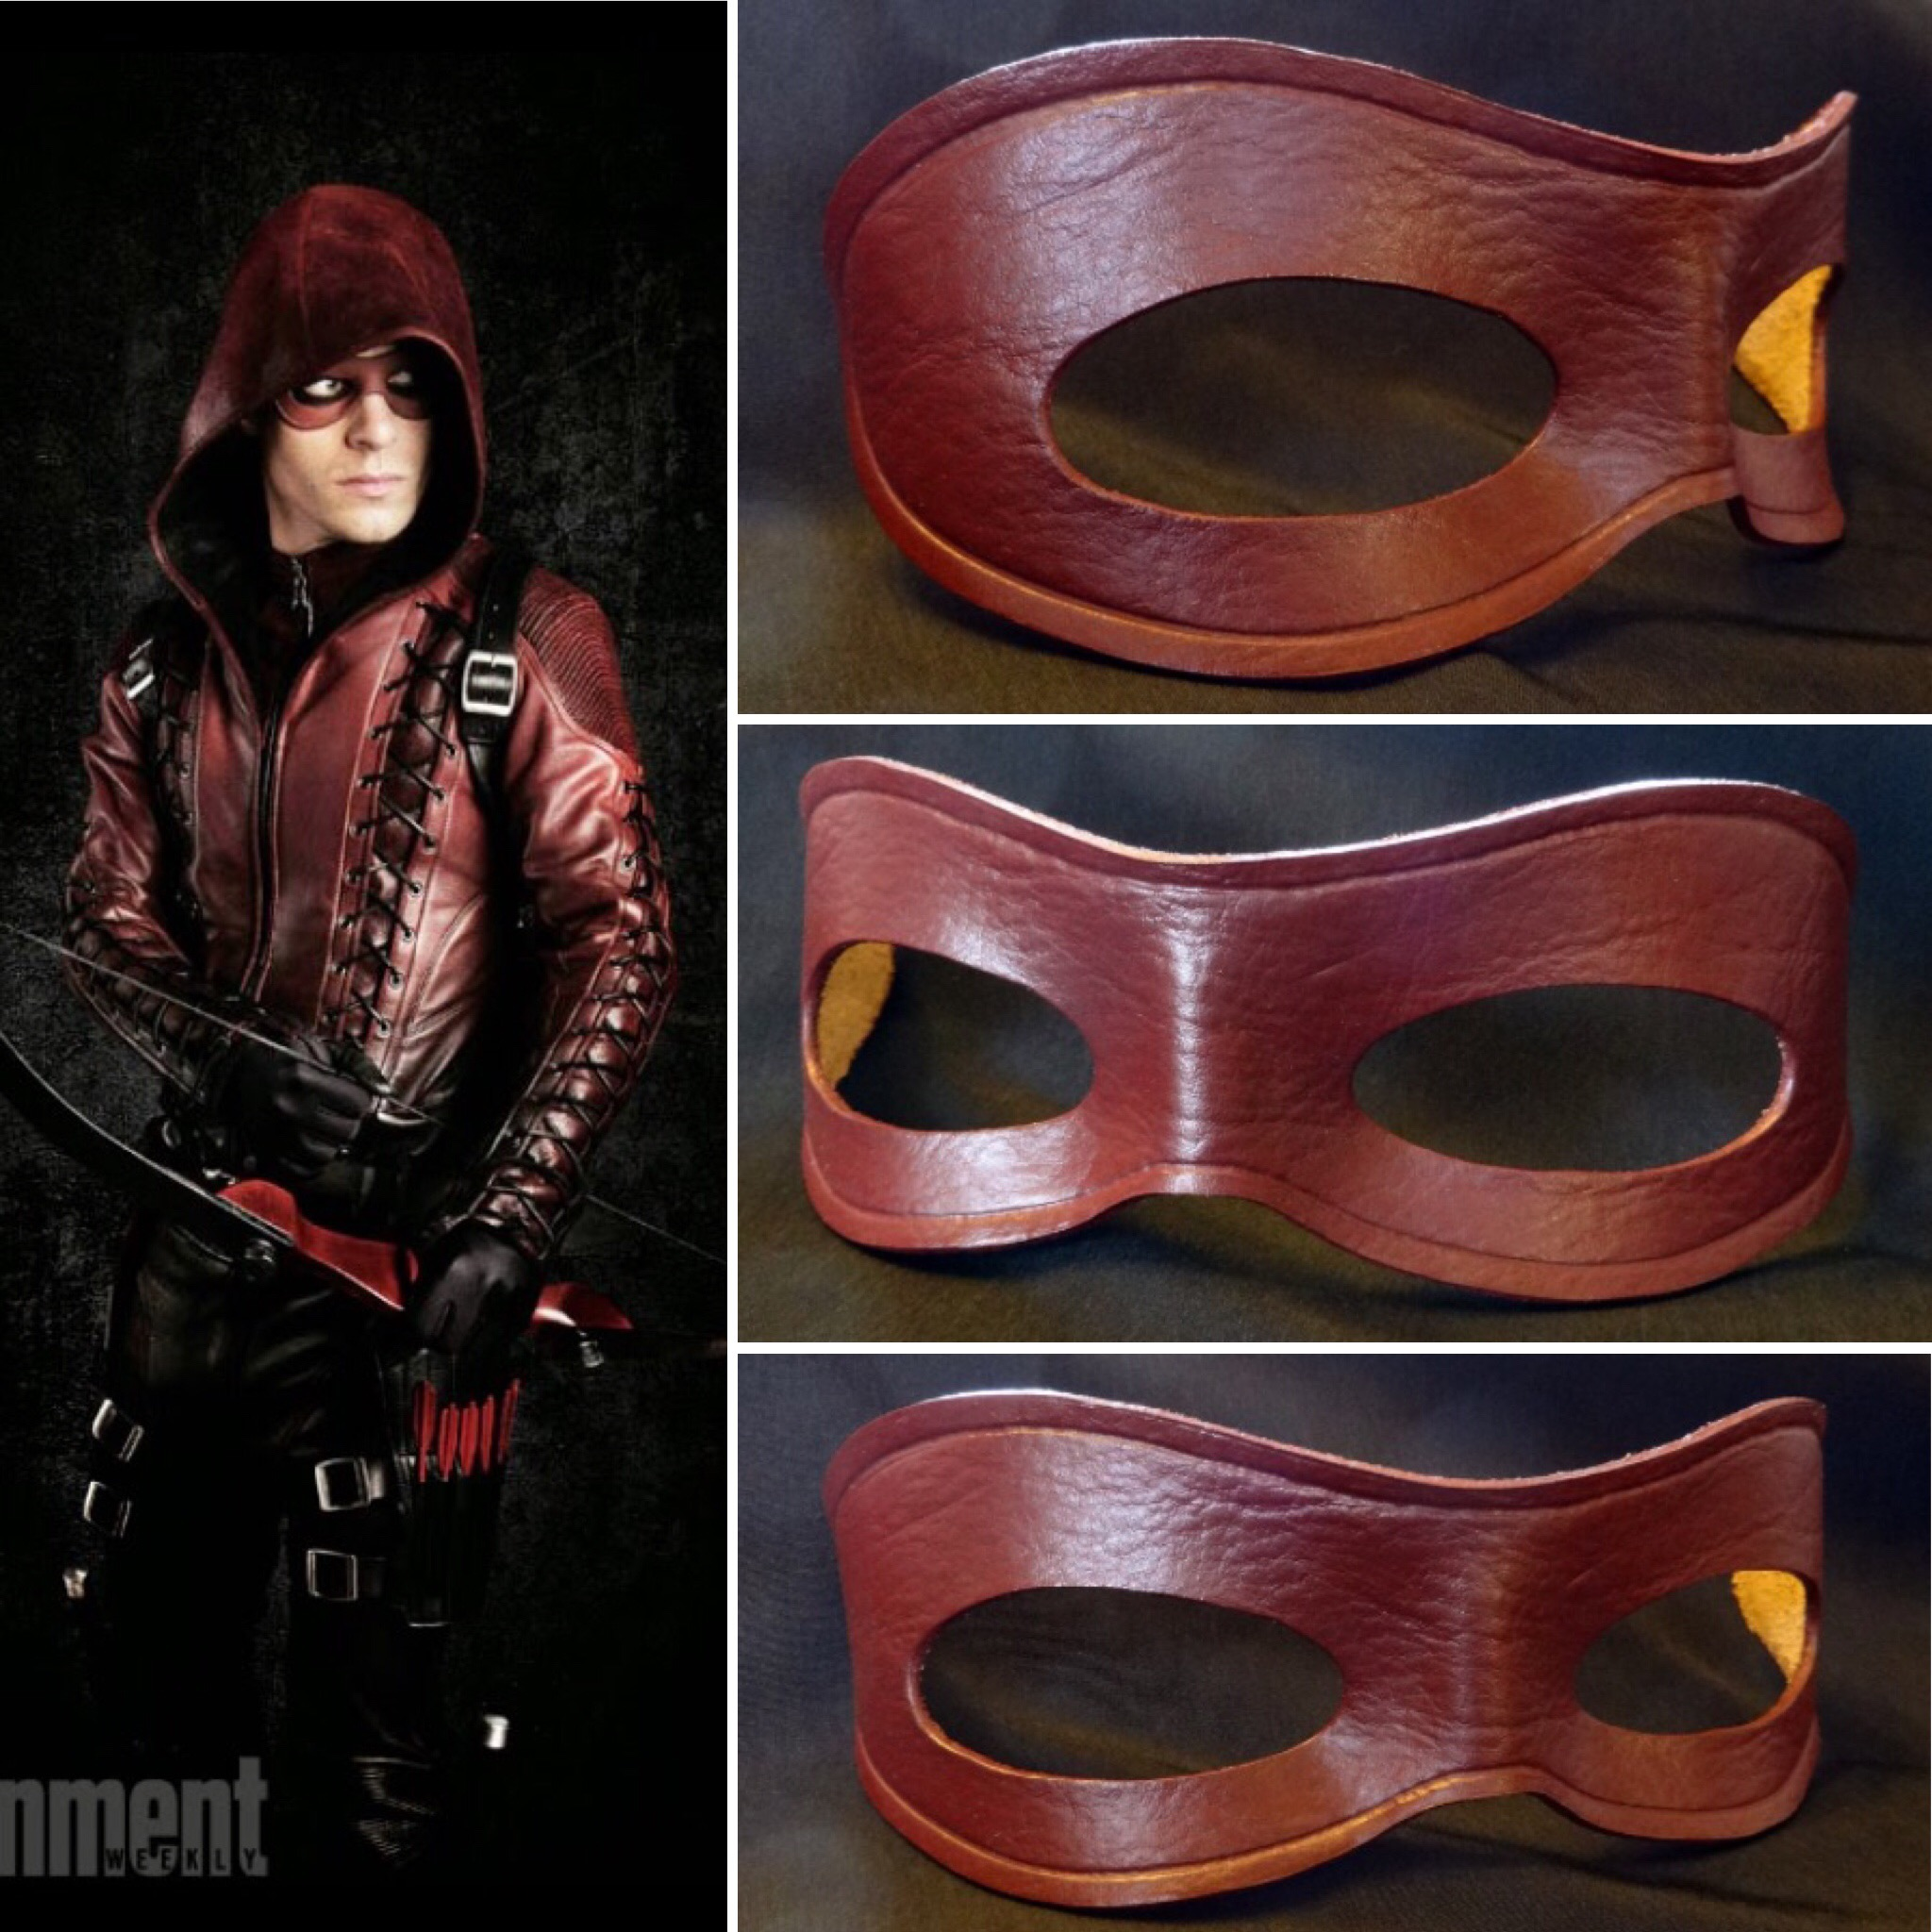 speedy-red-arrow-arsenal-mask.jpg